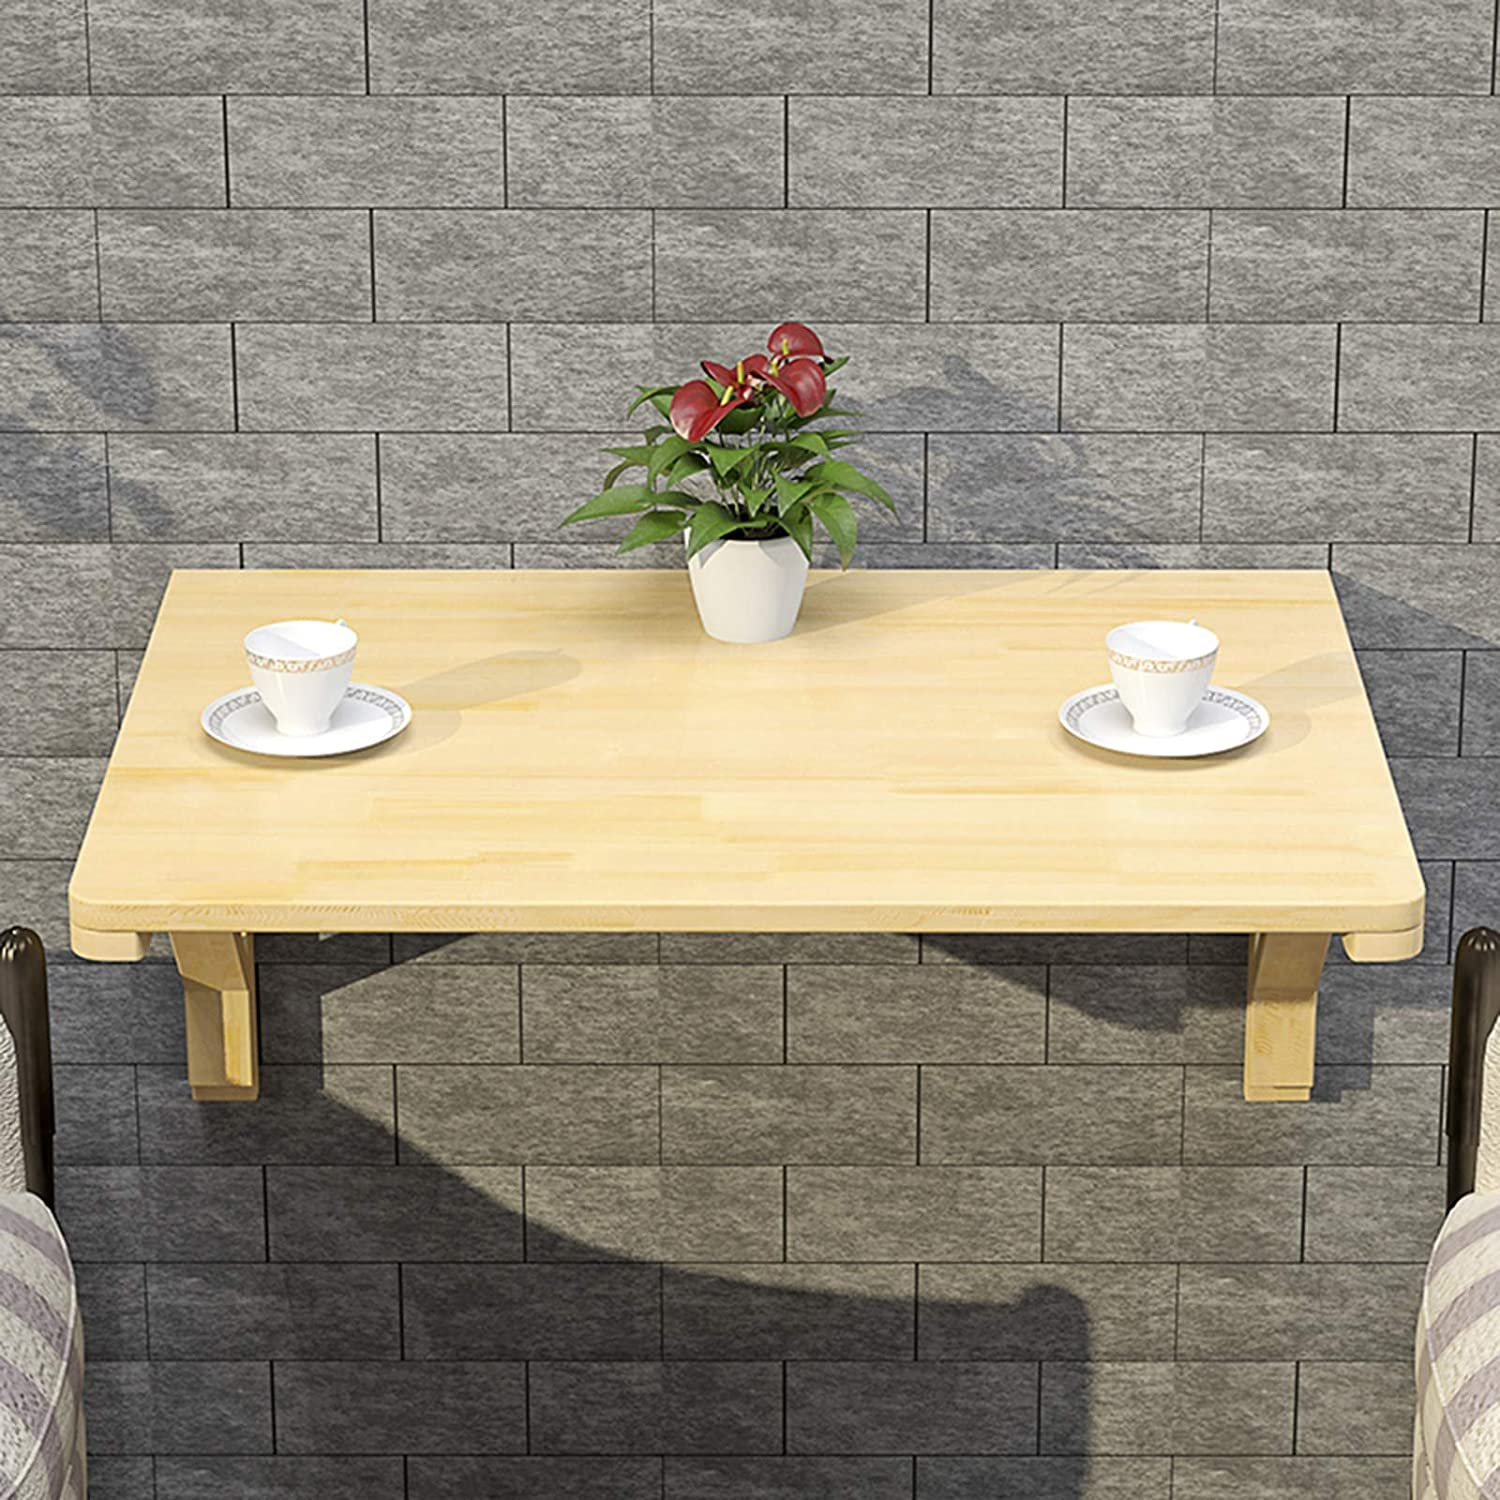 Foldable Drop-Leaf Coffee Jacksonville Mall OFFicial shop Table Wall Tables Kitchen for Mounted